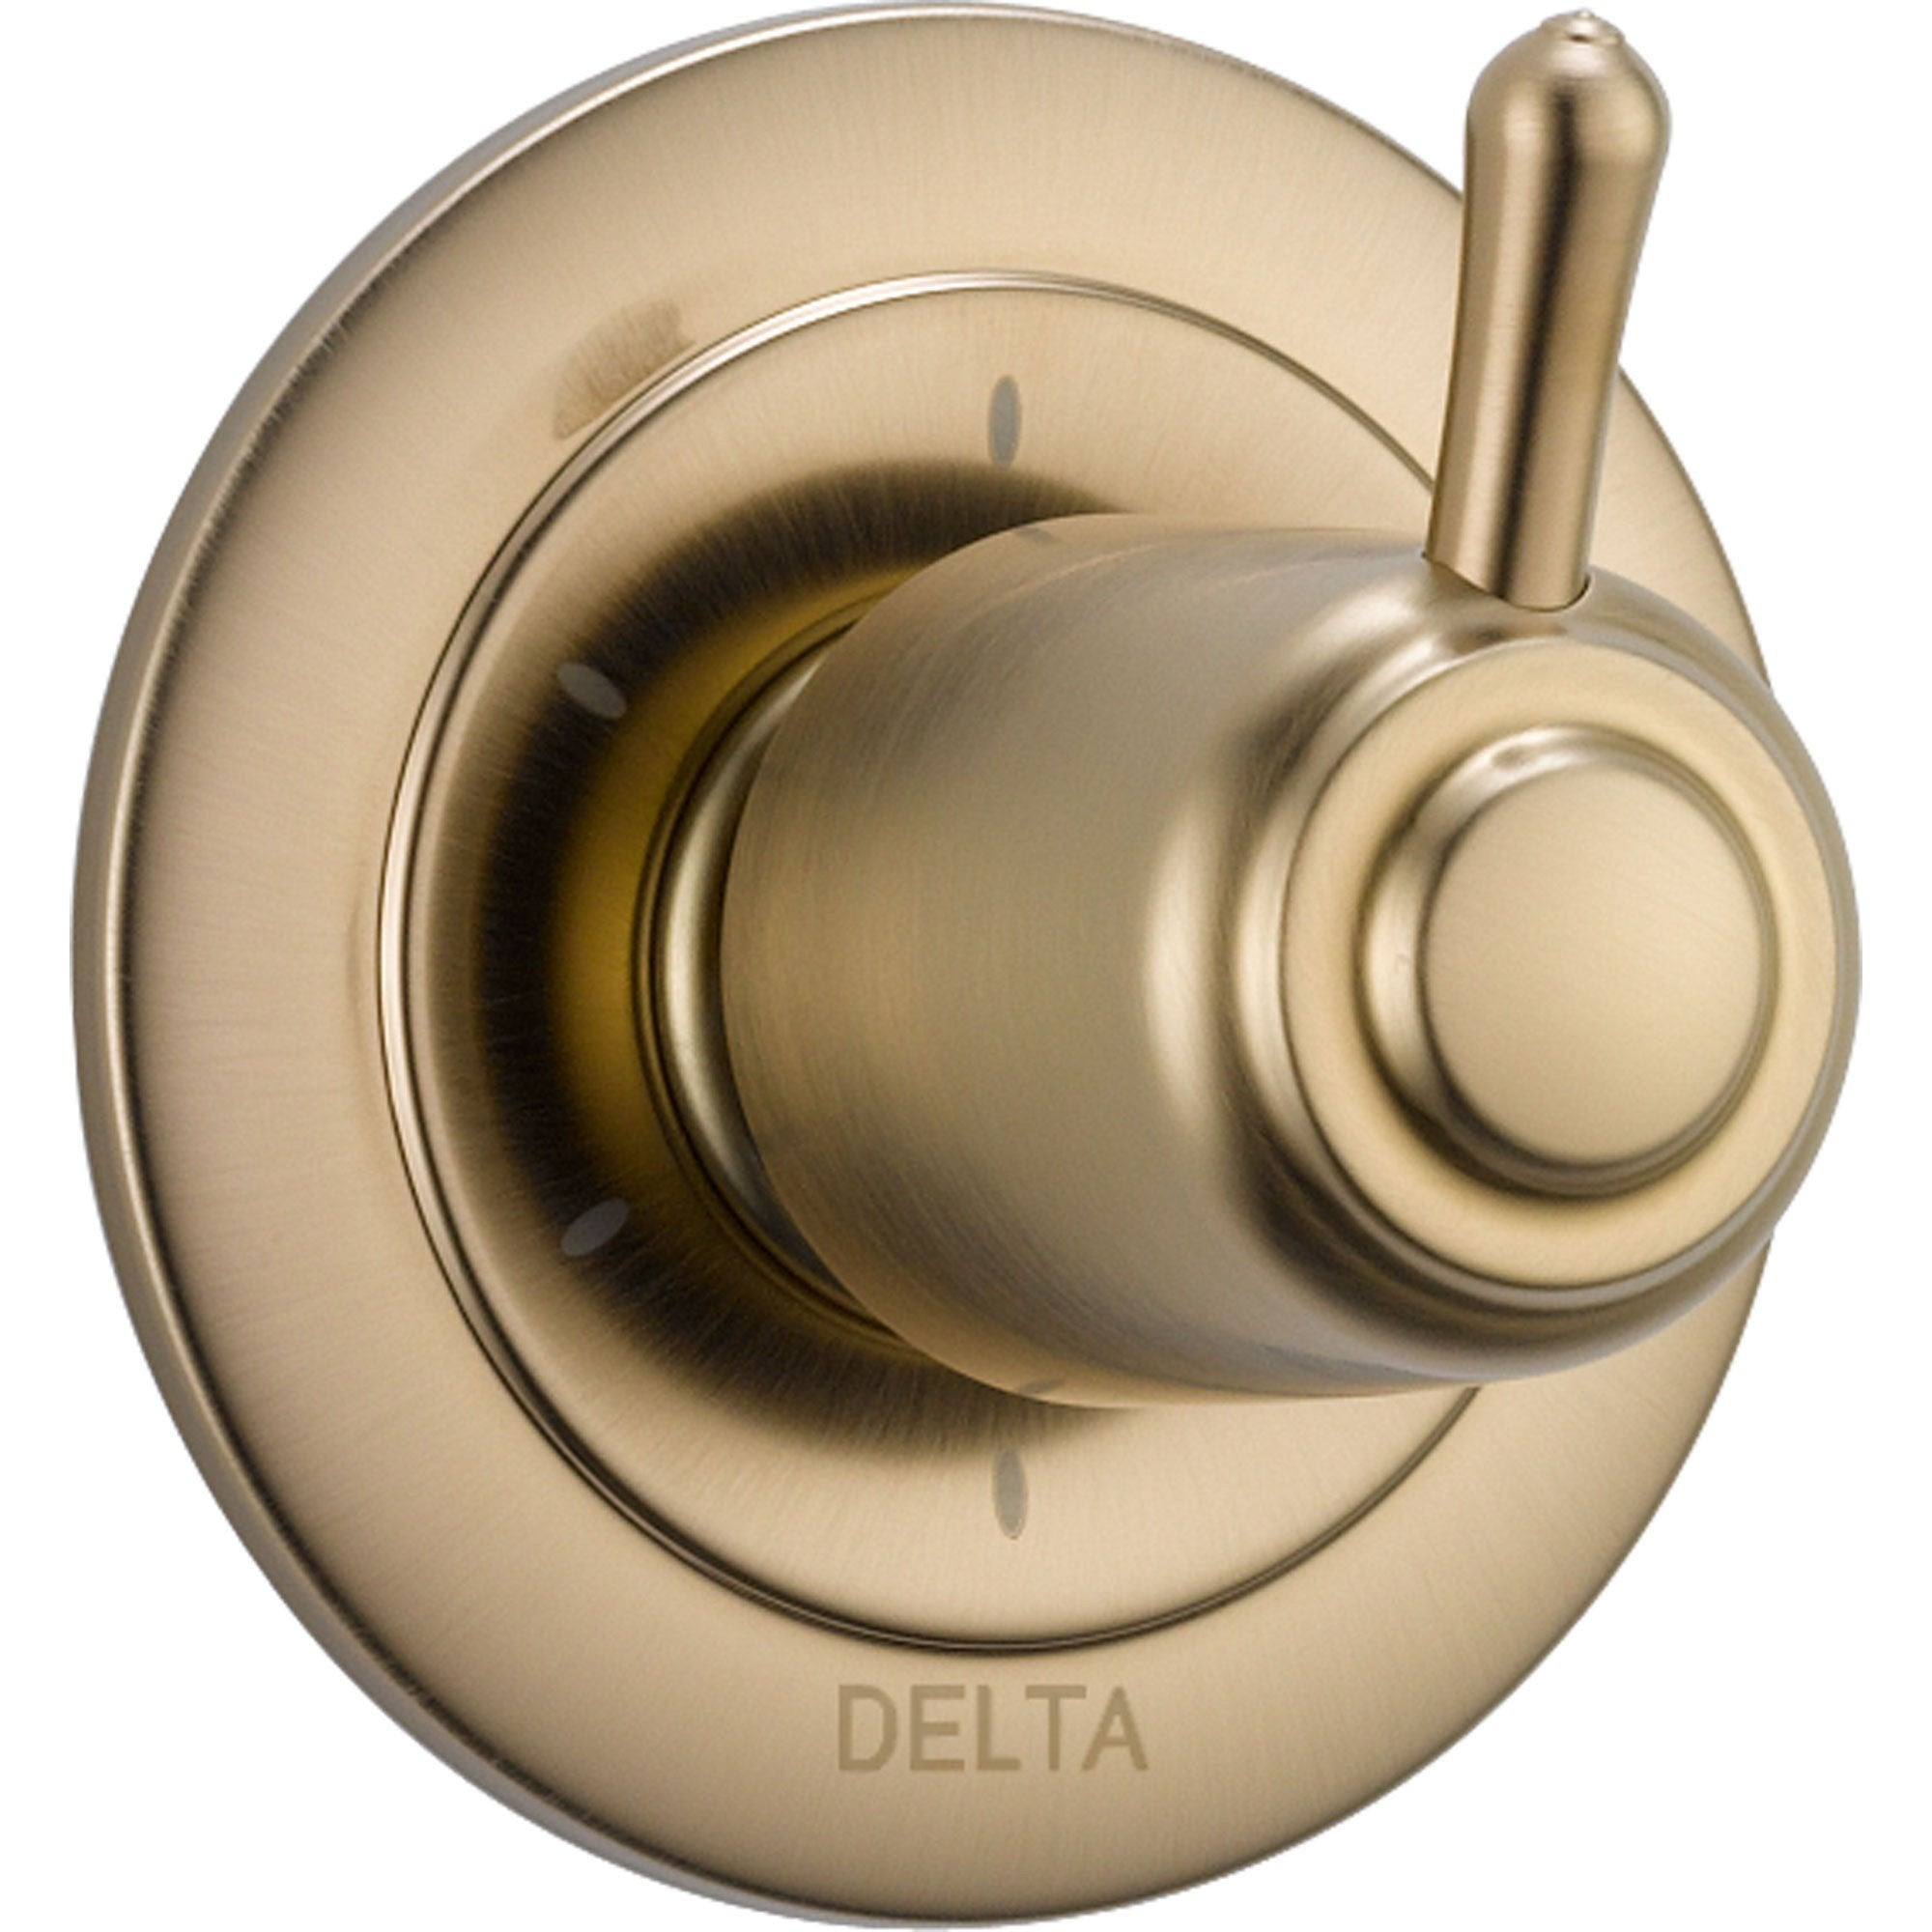 Delta Champagne Bronze Finish 6 Setting 3-Port Shower Diverter Fixture with Single Lever Handle INCLUDES Rough-in Valve D1328V